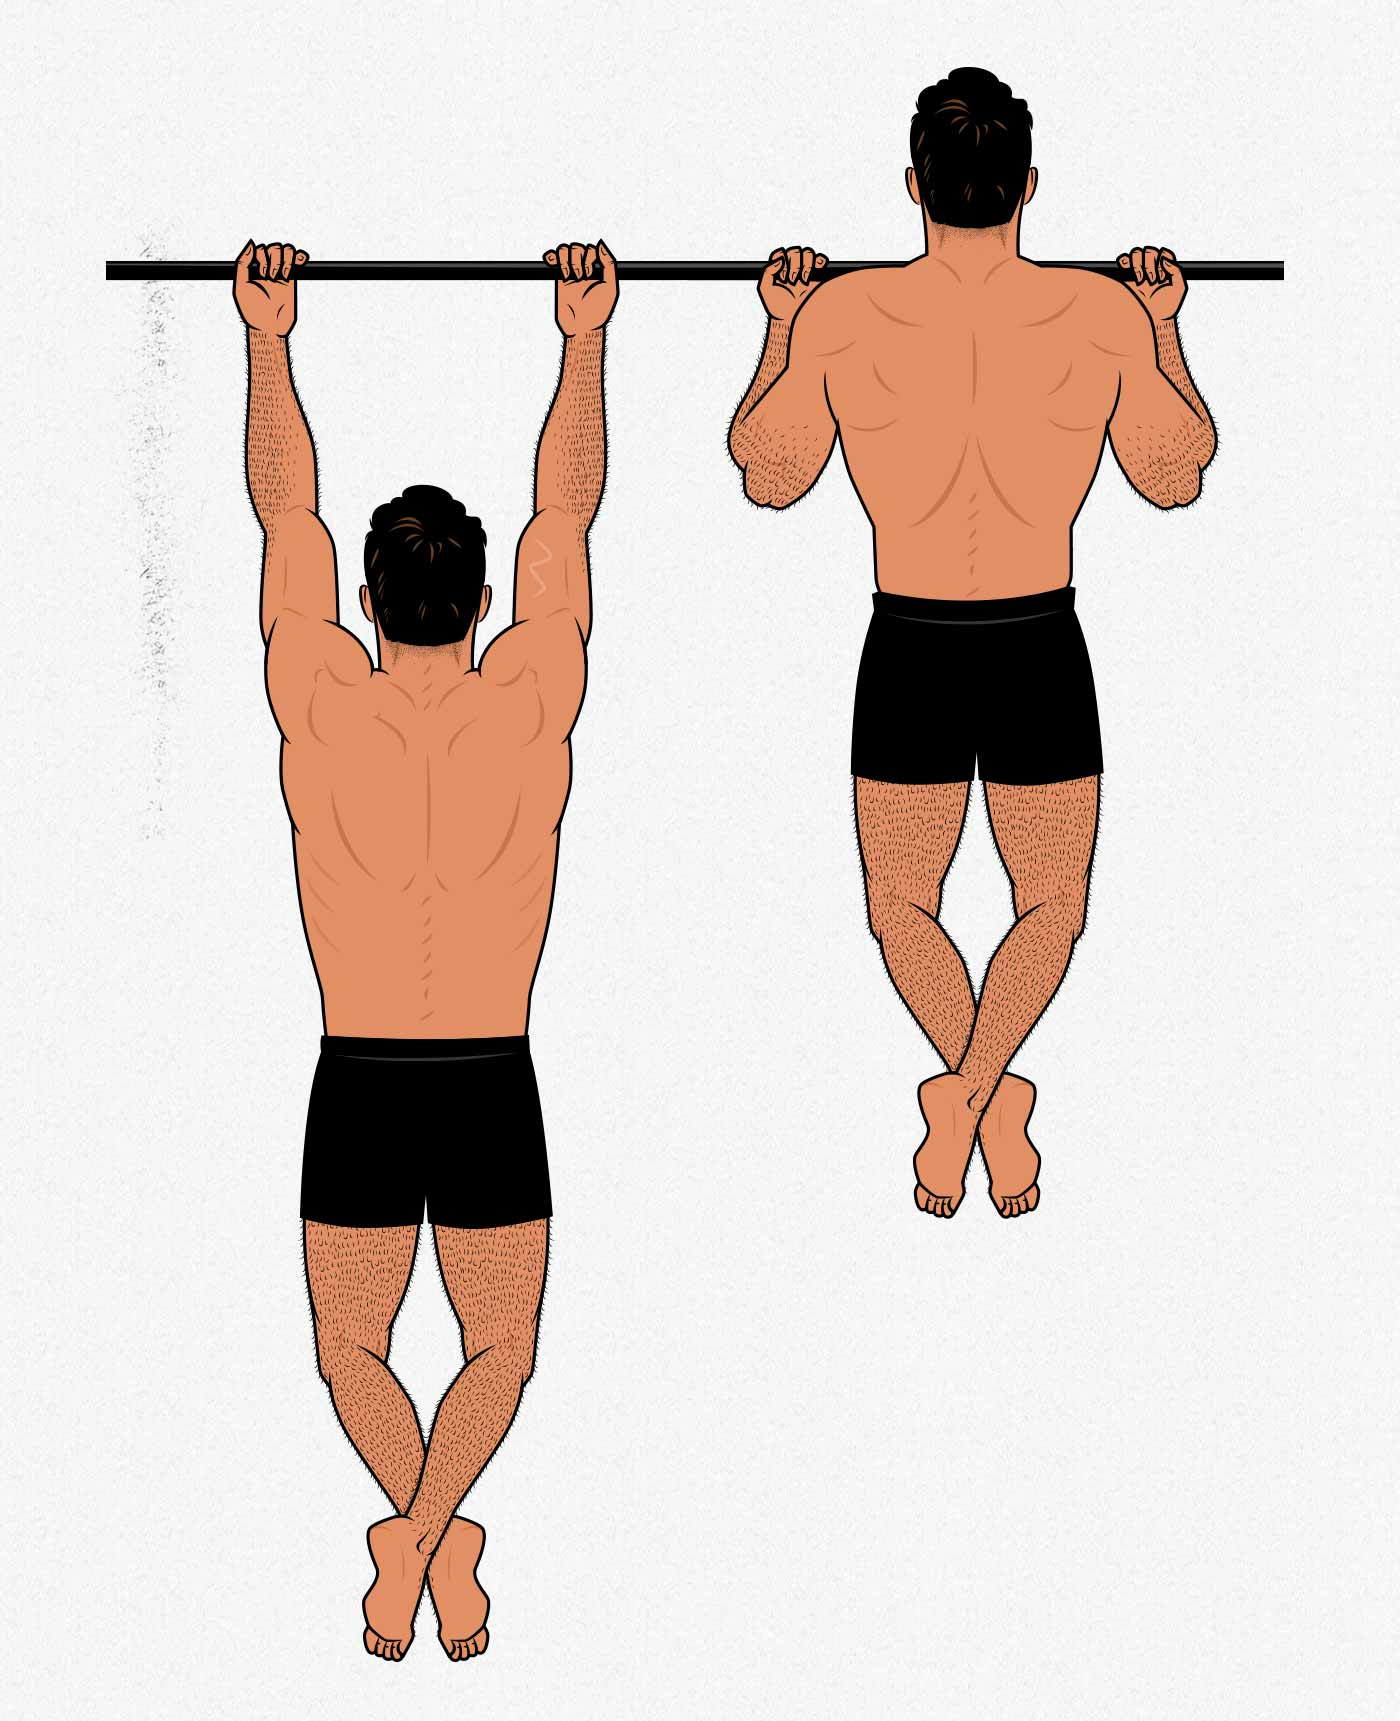 Illustration of a man doing a bodyweight chin-up through a full range of motion (dead hang and chest to bar).